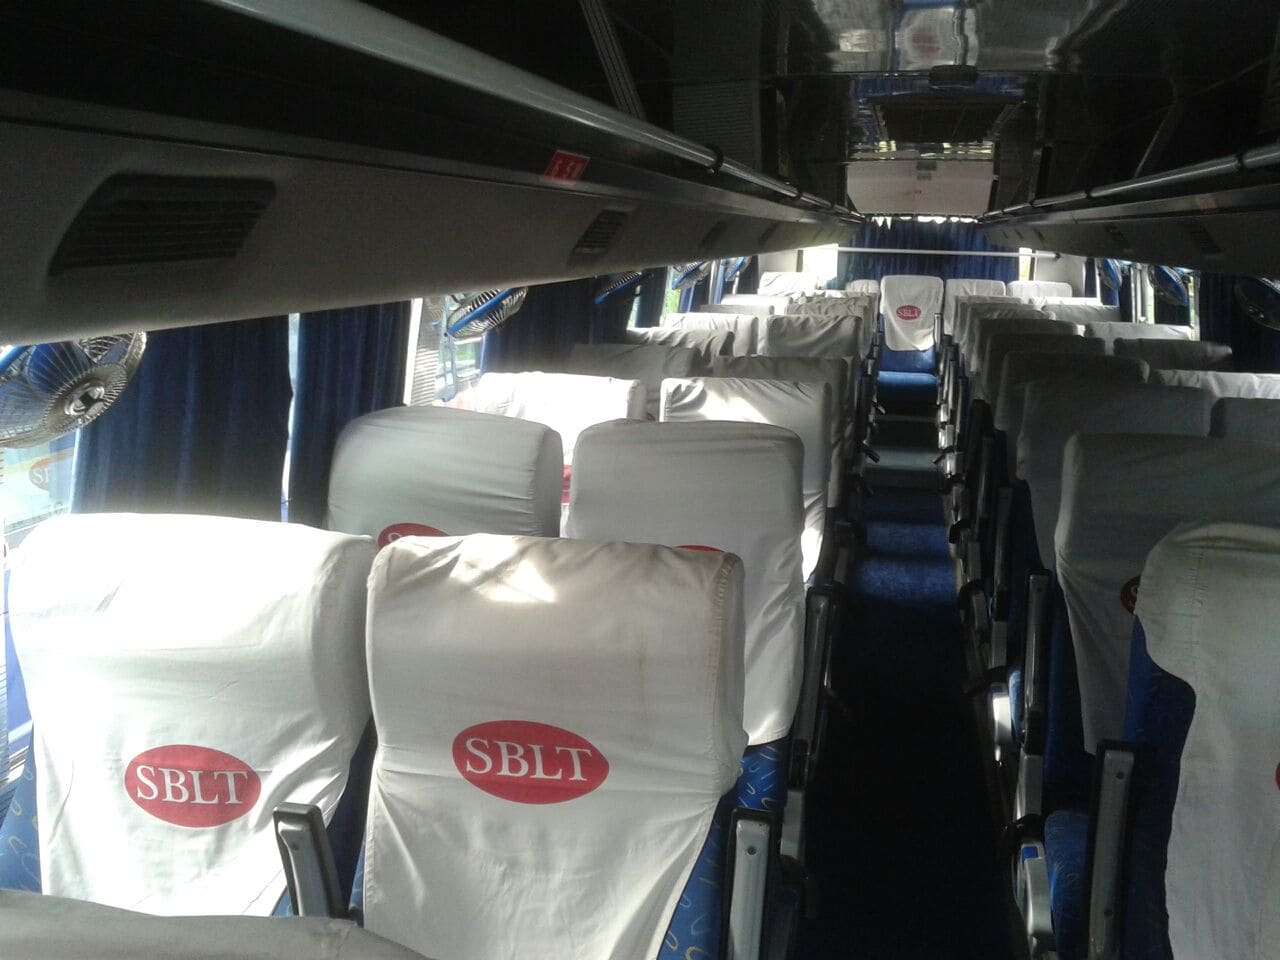 Sblt 45 Seater vieww inner